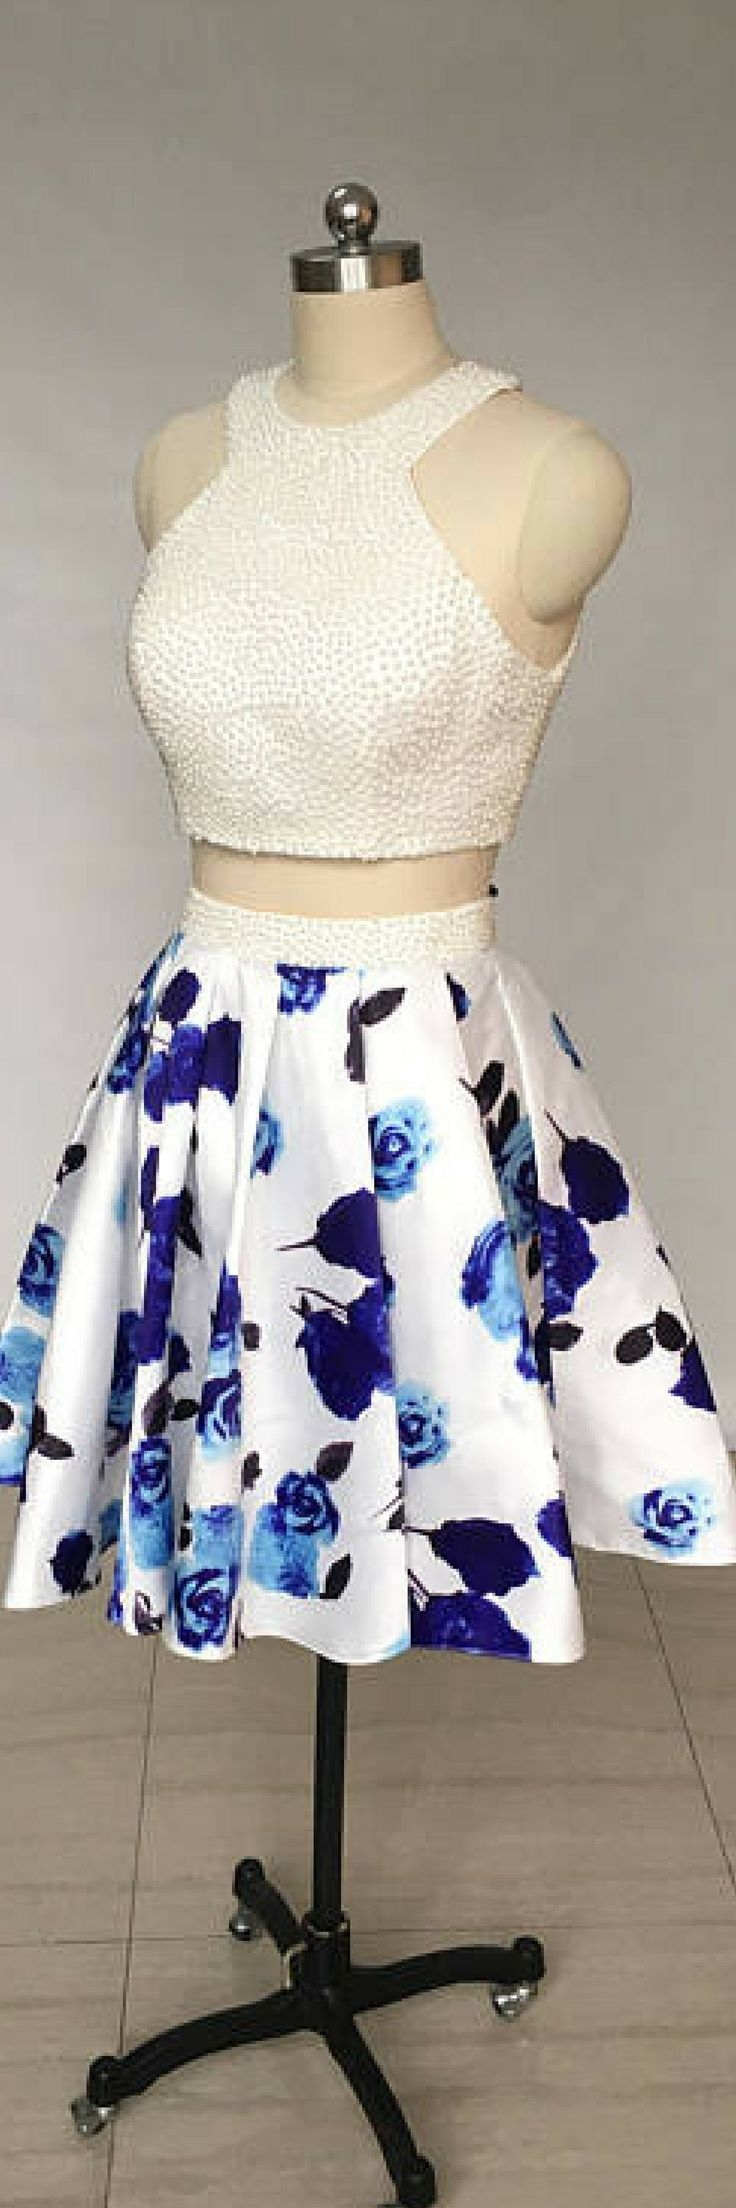 Two Piece Ivory Floral Print Satin Short Homecoming Dress – My HoCo Dresses Ideas